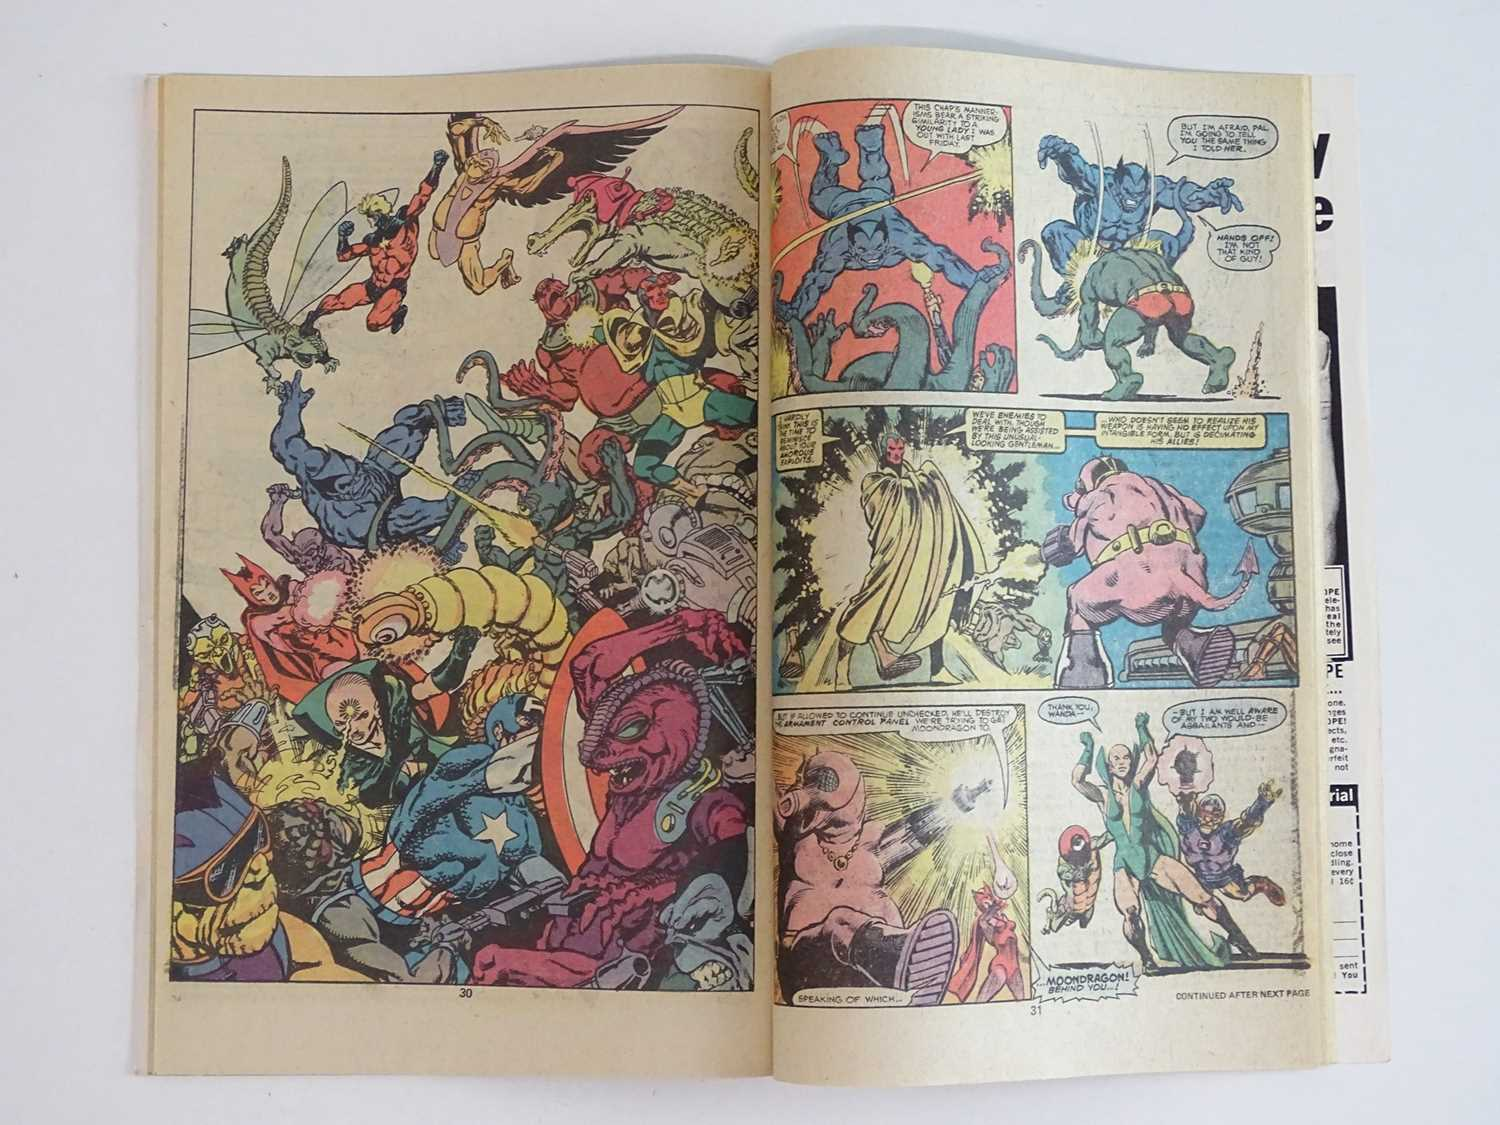 """AVENGERS KING-SIZE ANNUAL #7 - (1977 - MARVEL) - Includes """"Death"""" of Adam Warlock + Thanos, - Image 9 of 11"""